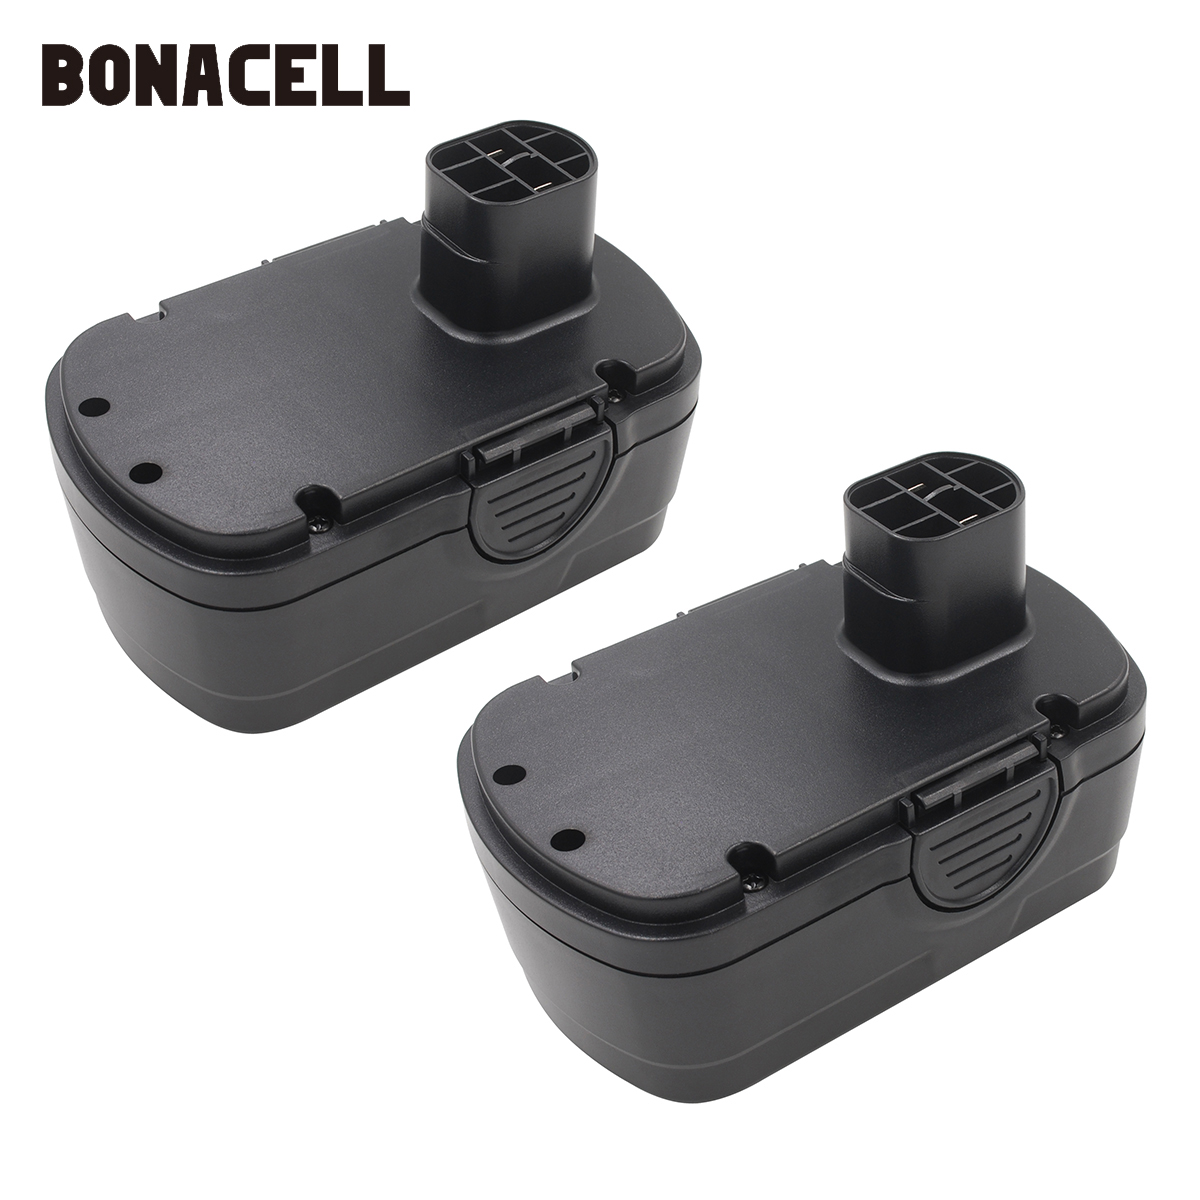 Bonacell 18V 2000mAh For Earthwise Mode BP91001 Replacement Battery CB20018 L10